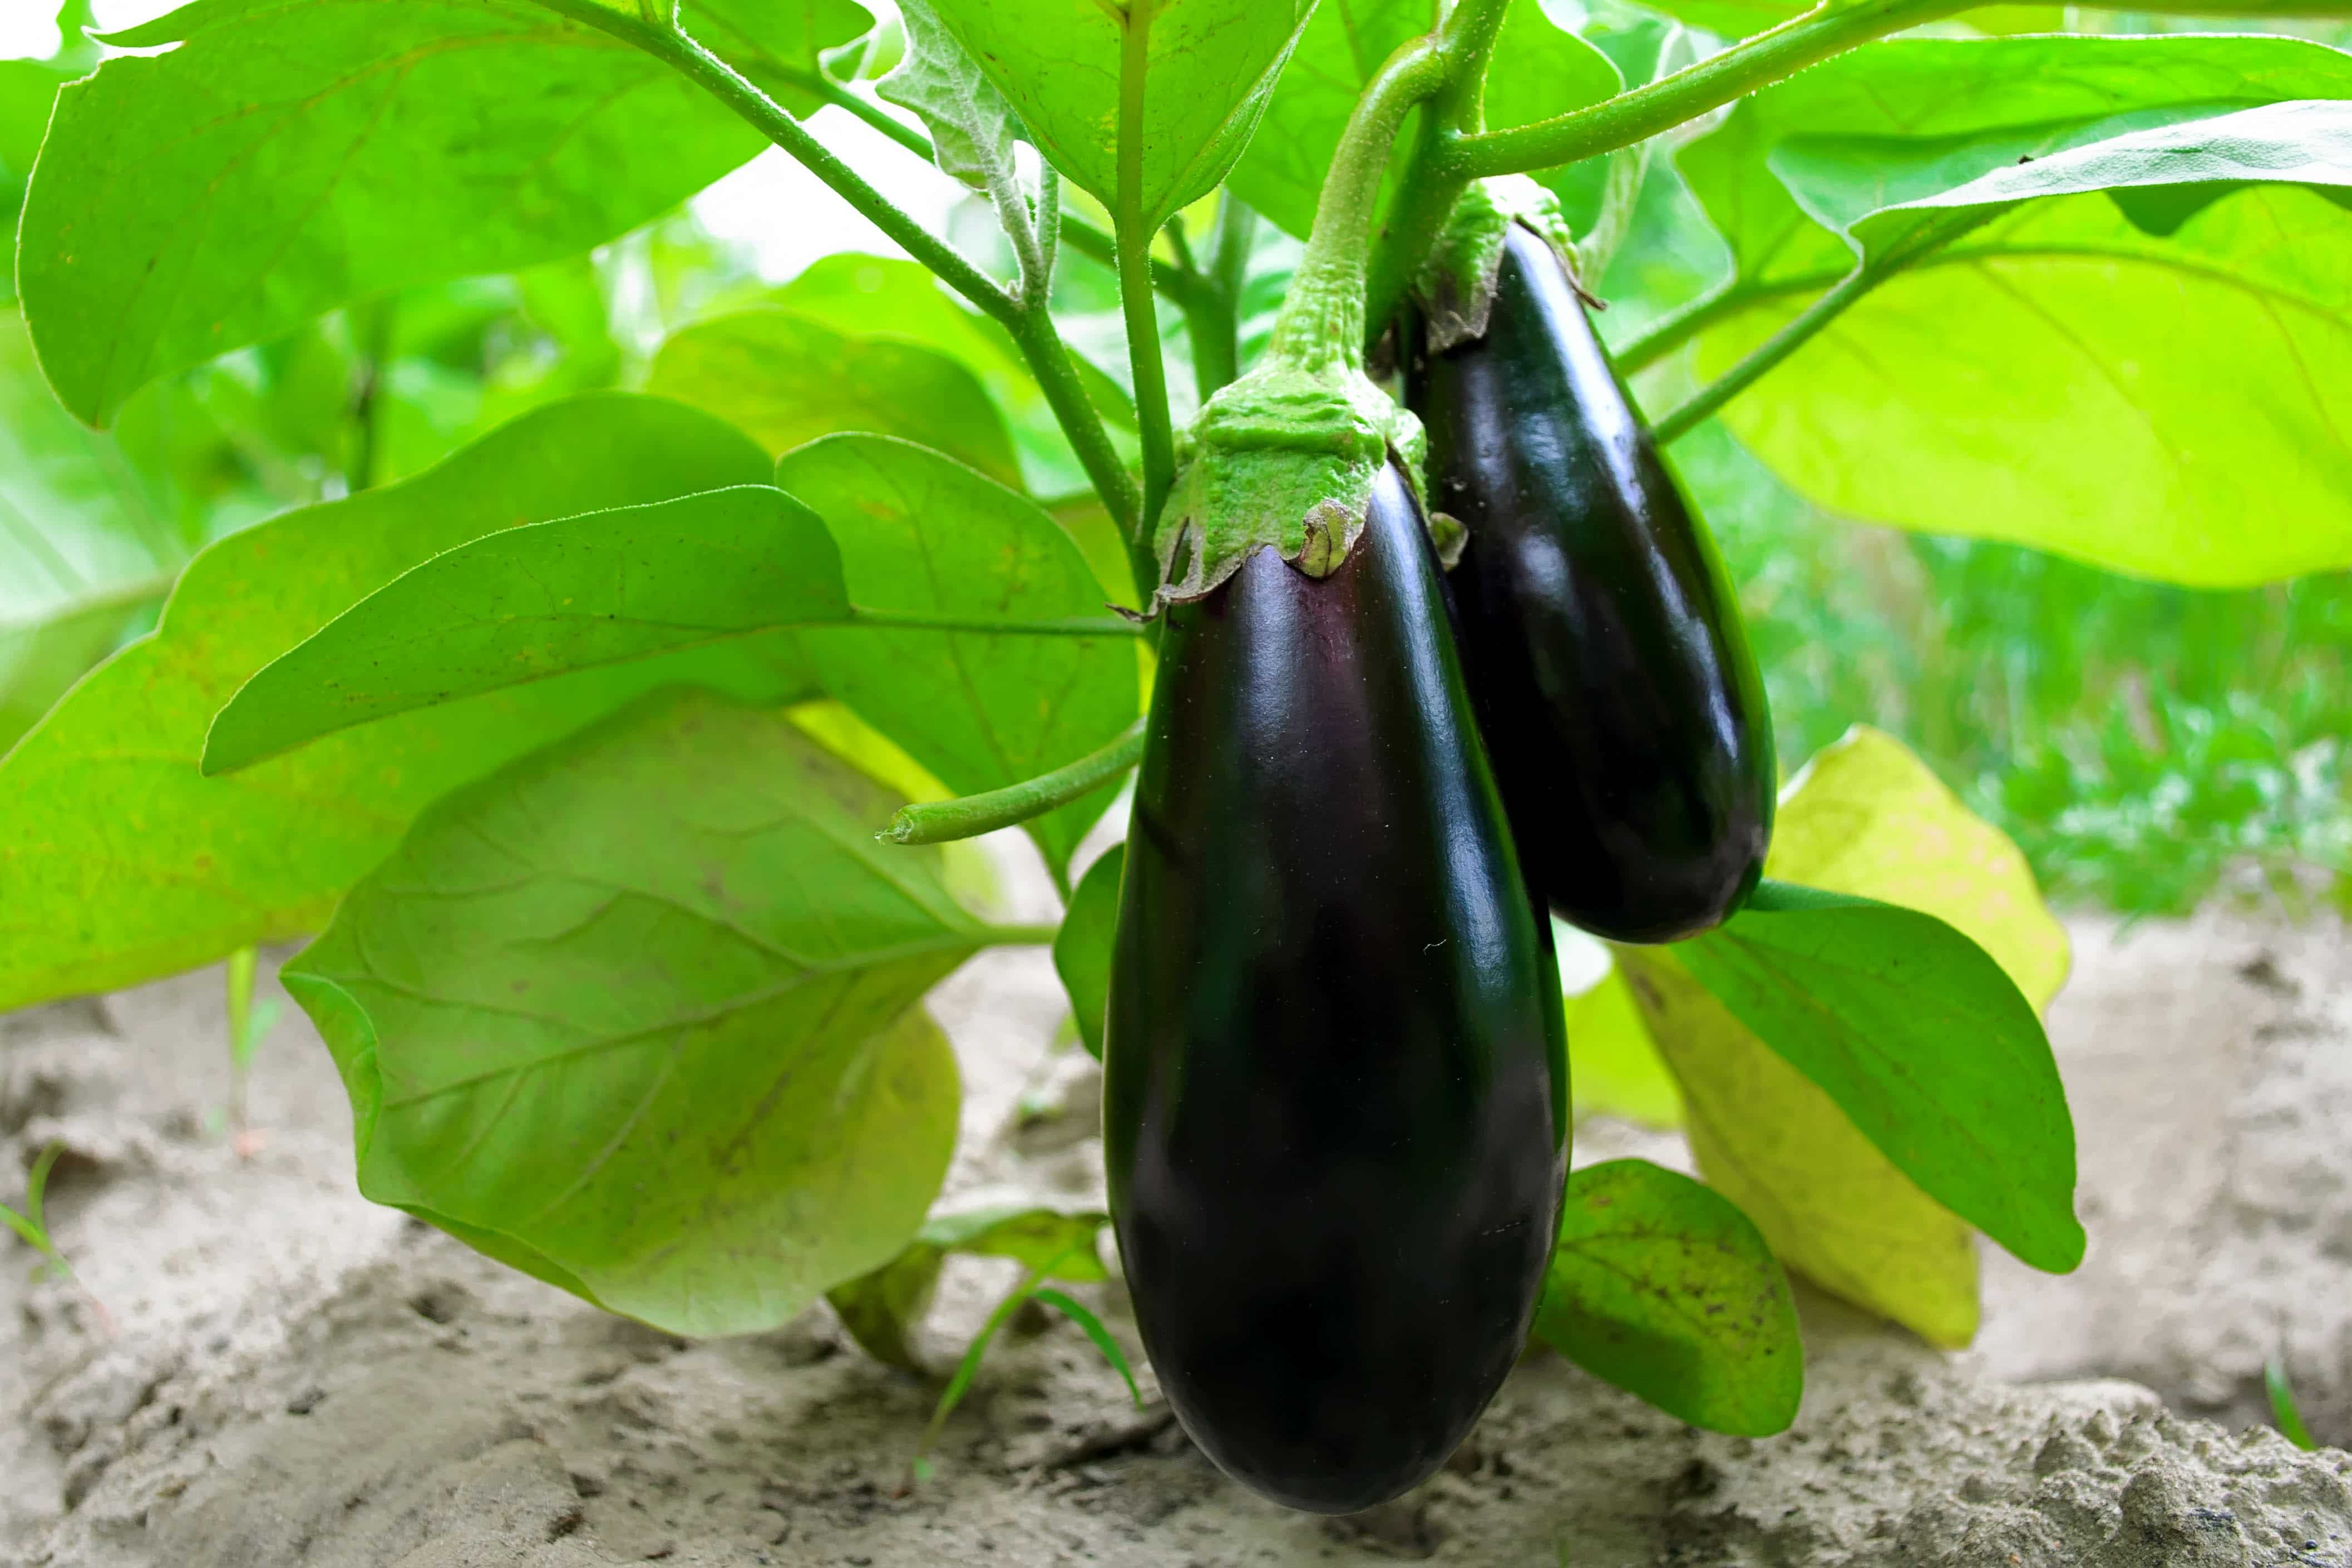 Ripe eggplant in the garden. Fresh organic eggplant. Purple eggplant grows in the soil. Eggplant culture grows in the greenhouse. Ripe purple aubergine. Growing vegetables in the greenhouse.